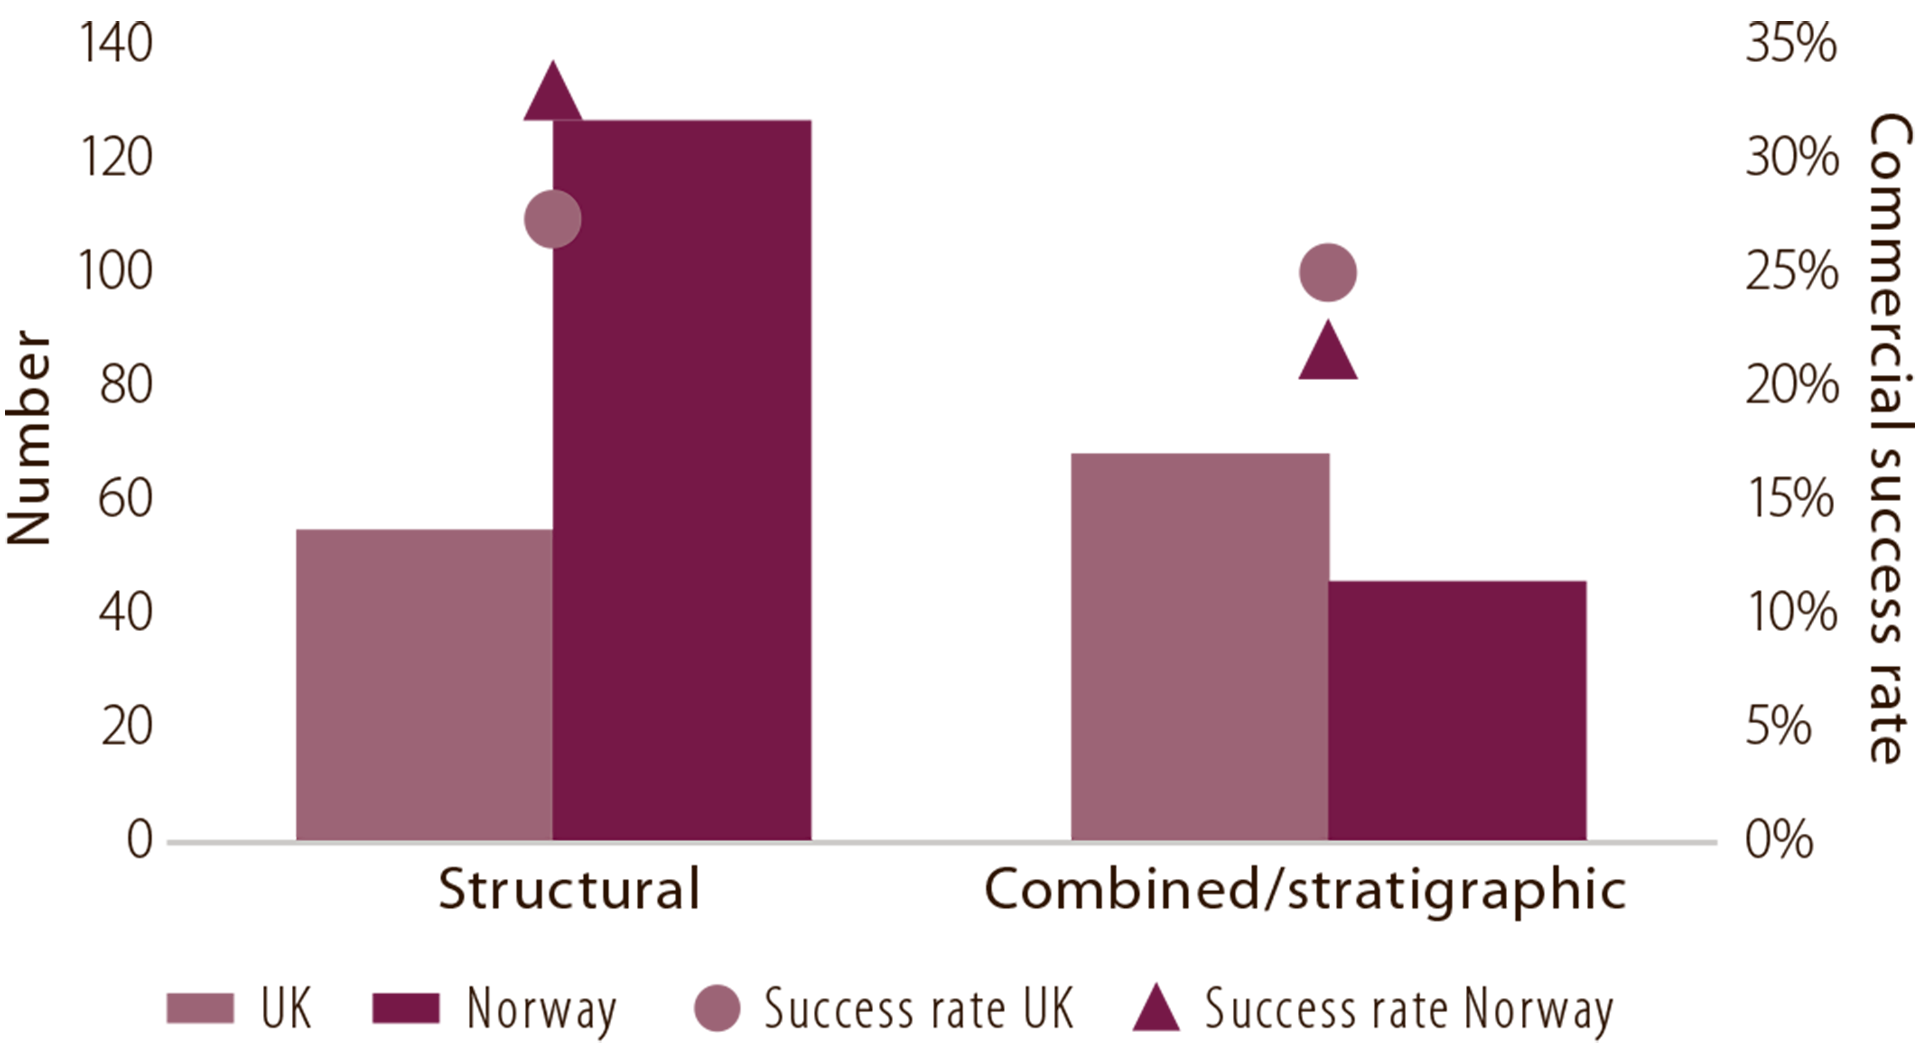 Figure 6.6 Trap types and commercial success rates in Norway and the UK, 2008-17. Source: Westwood